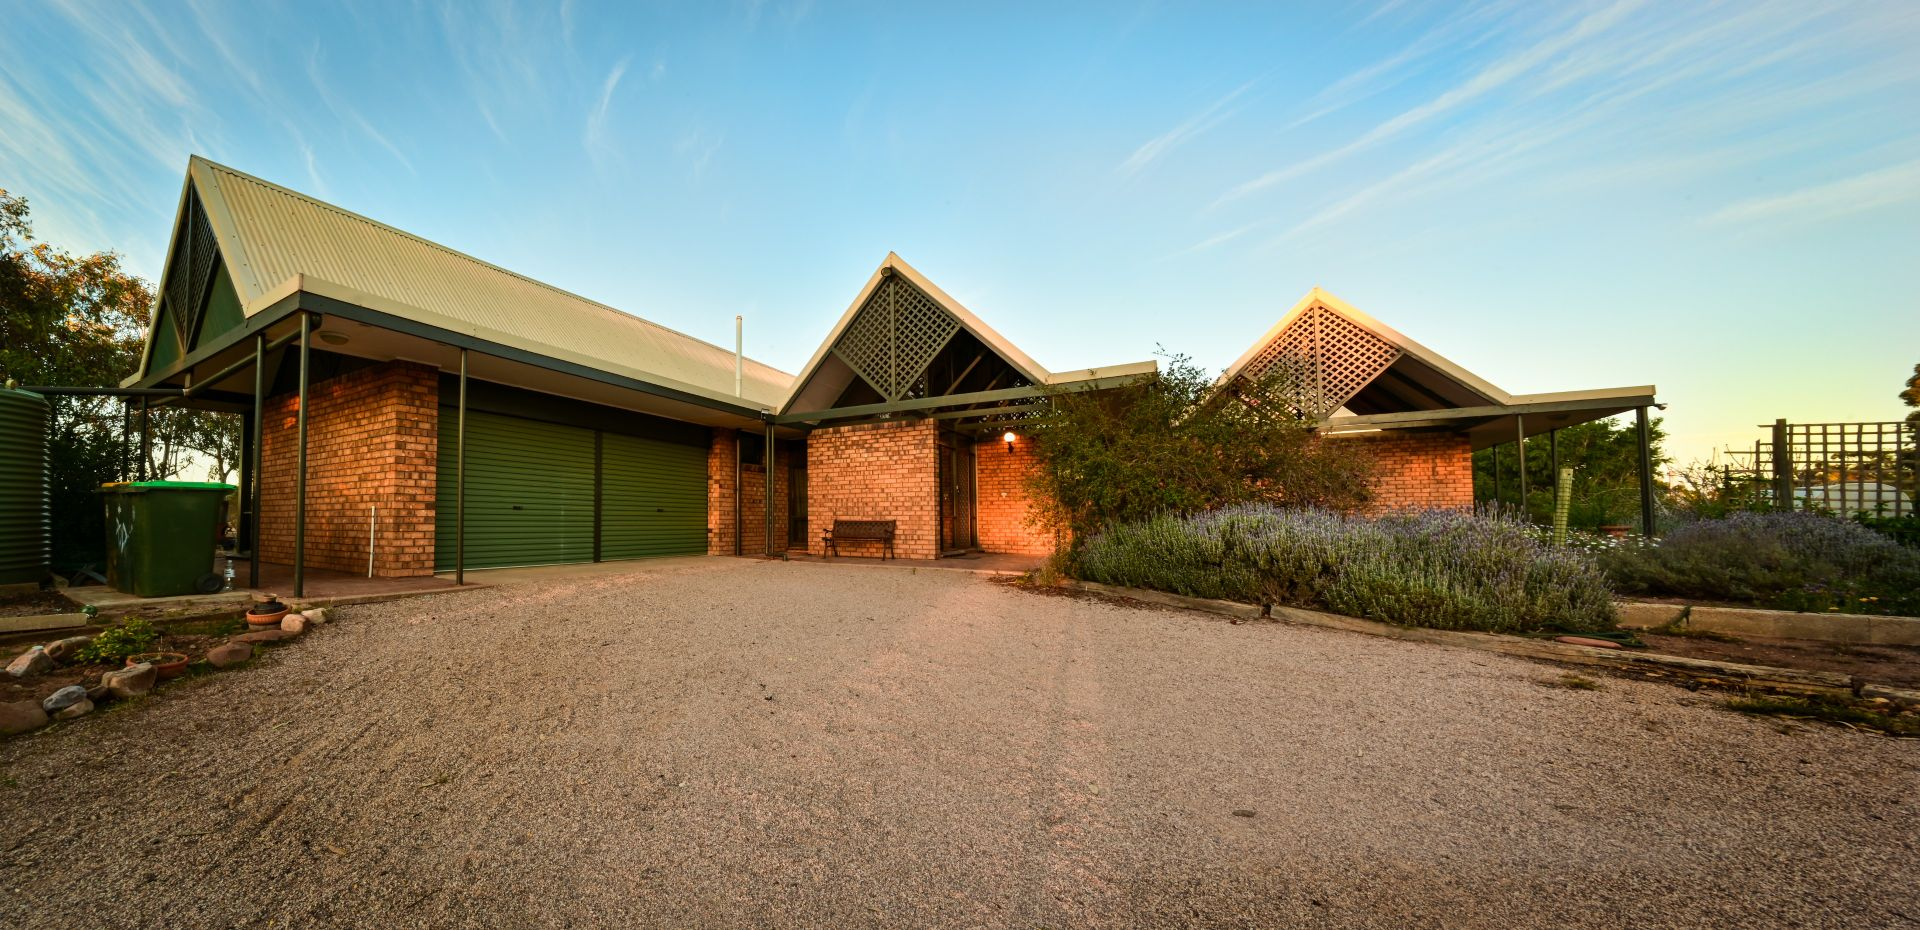 1-9 French Drive, Stirling North SA 5710, Image 2